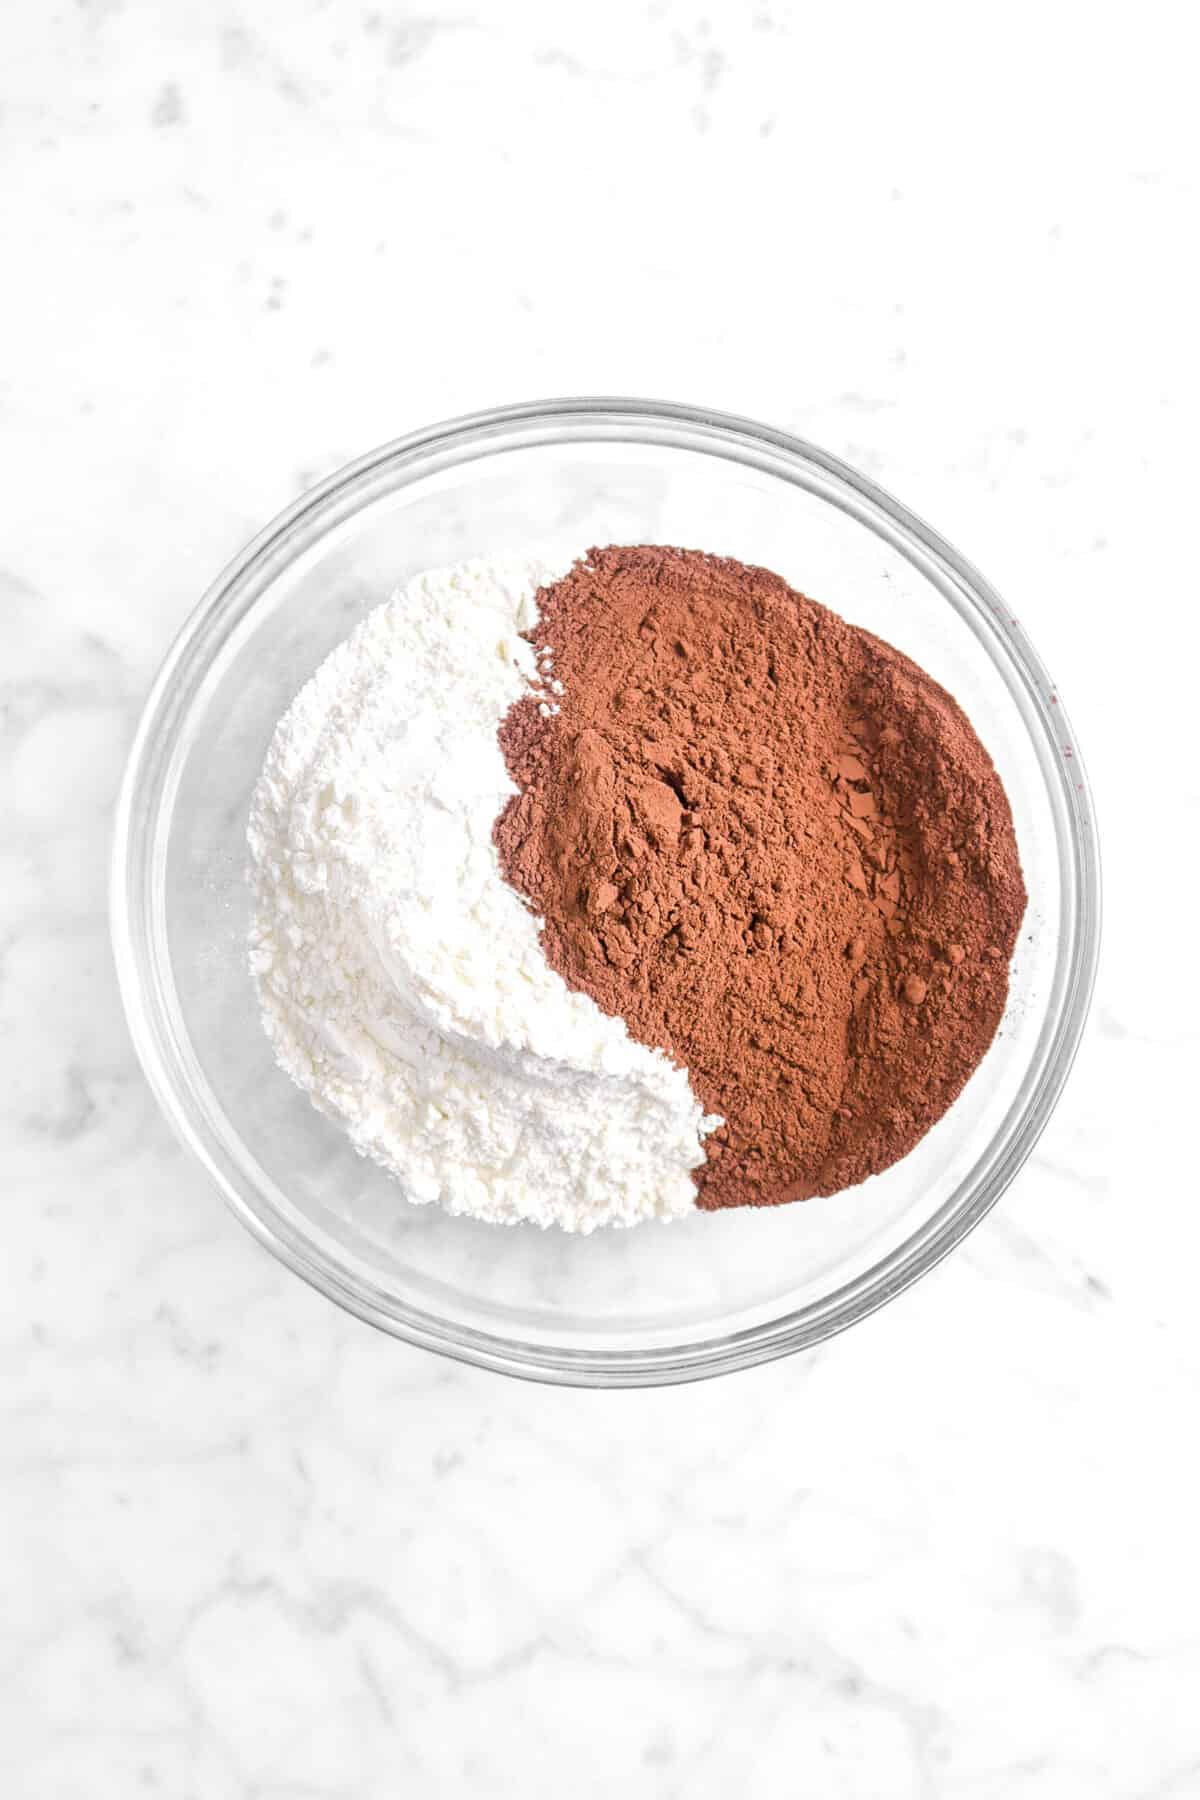 cocoa powder and flour in a bowl